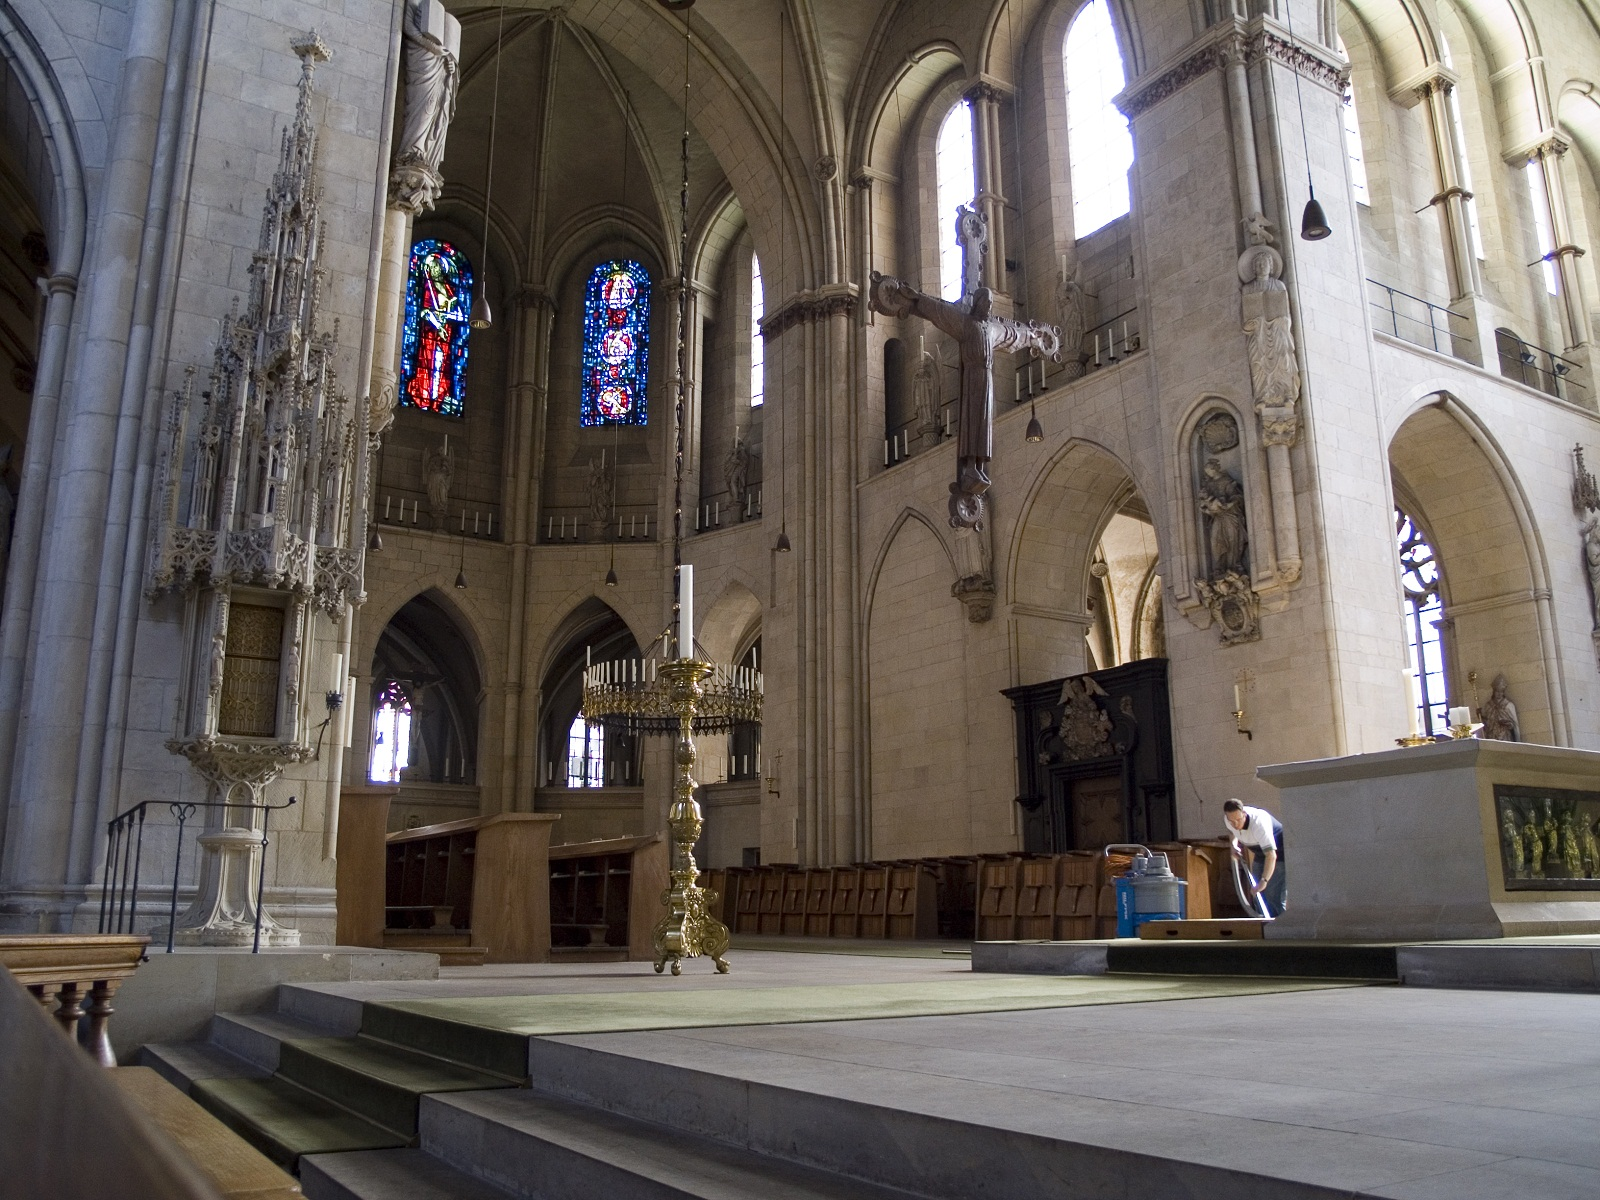 Saint Paulus Dom, Munster, Germany, Interior